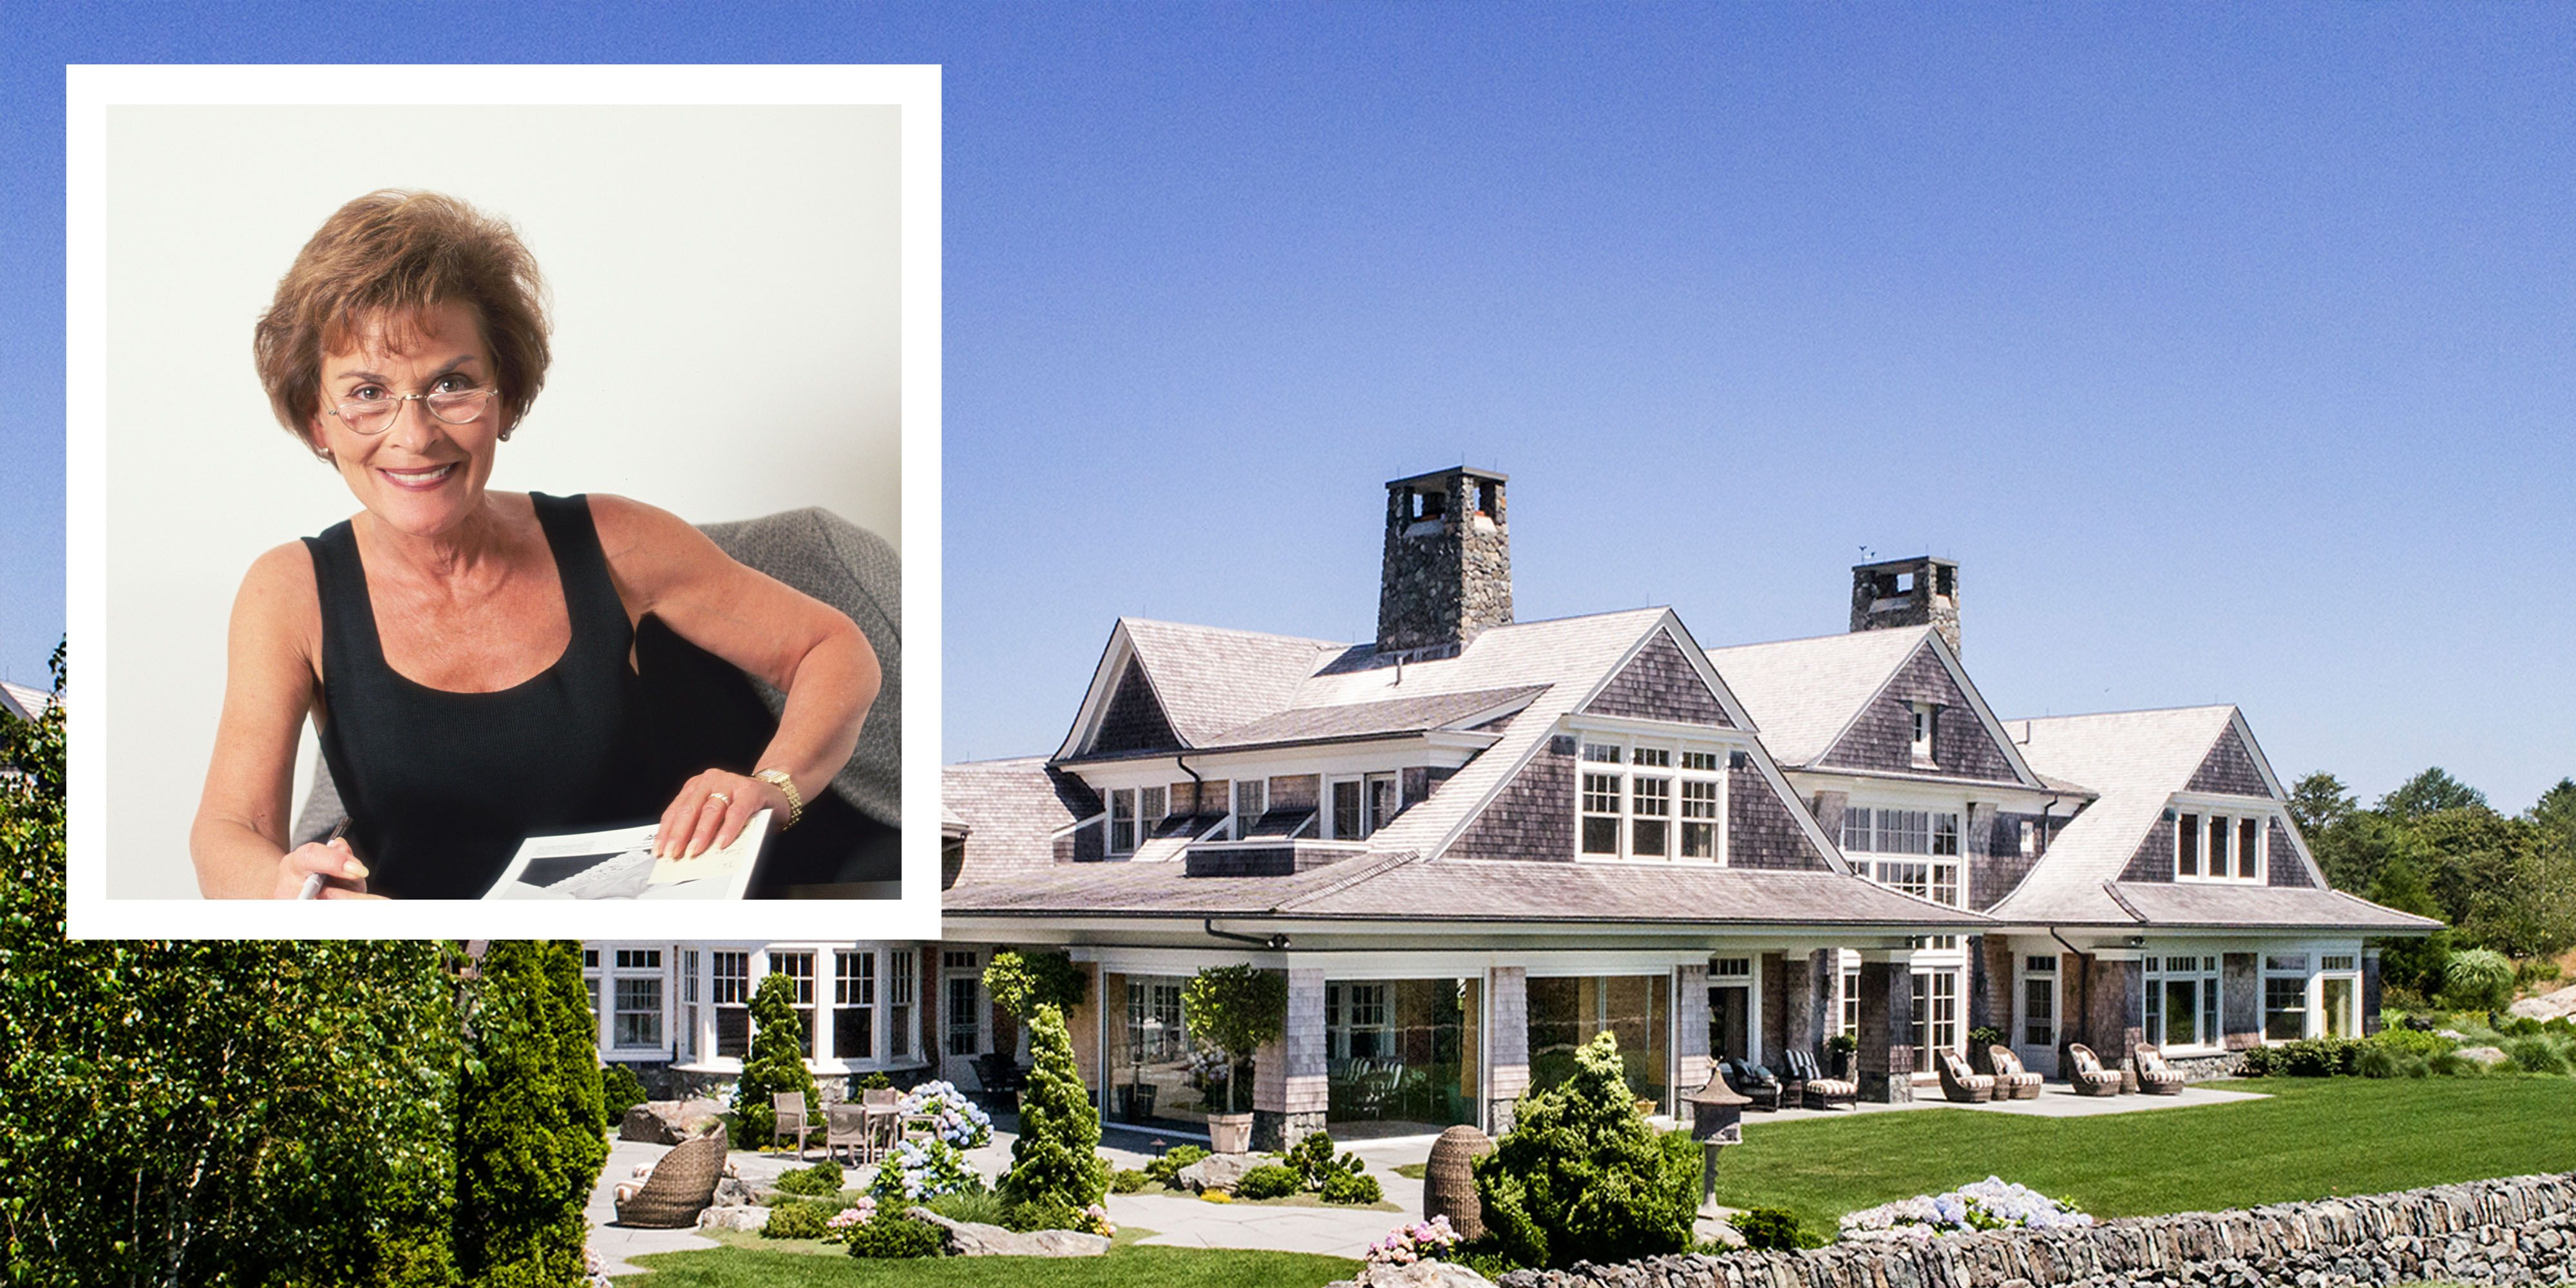 Judge Judy Buys 9 Million Rhode Island Home A Look At